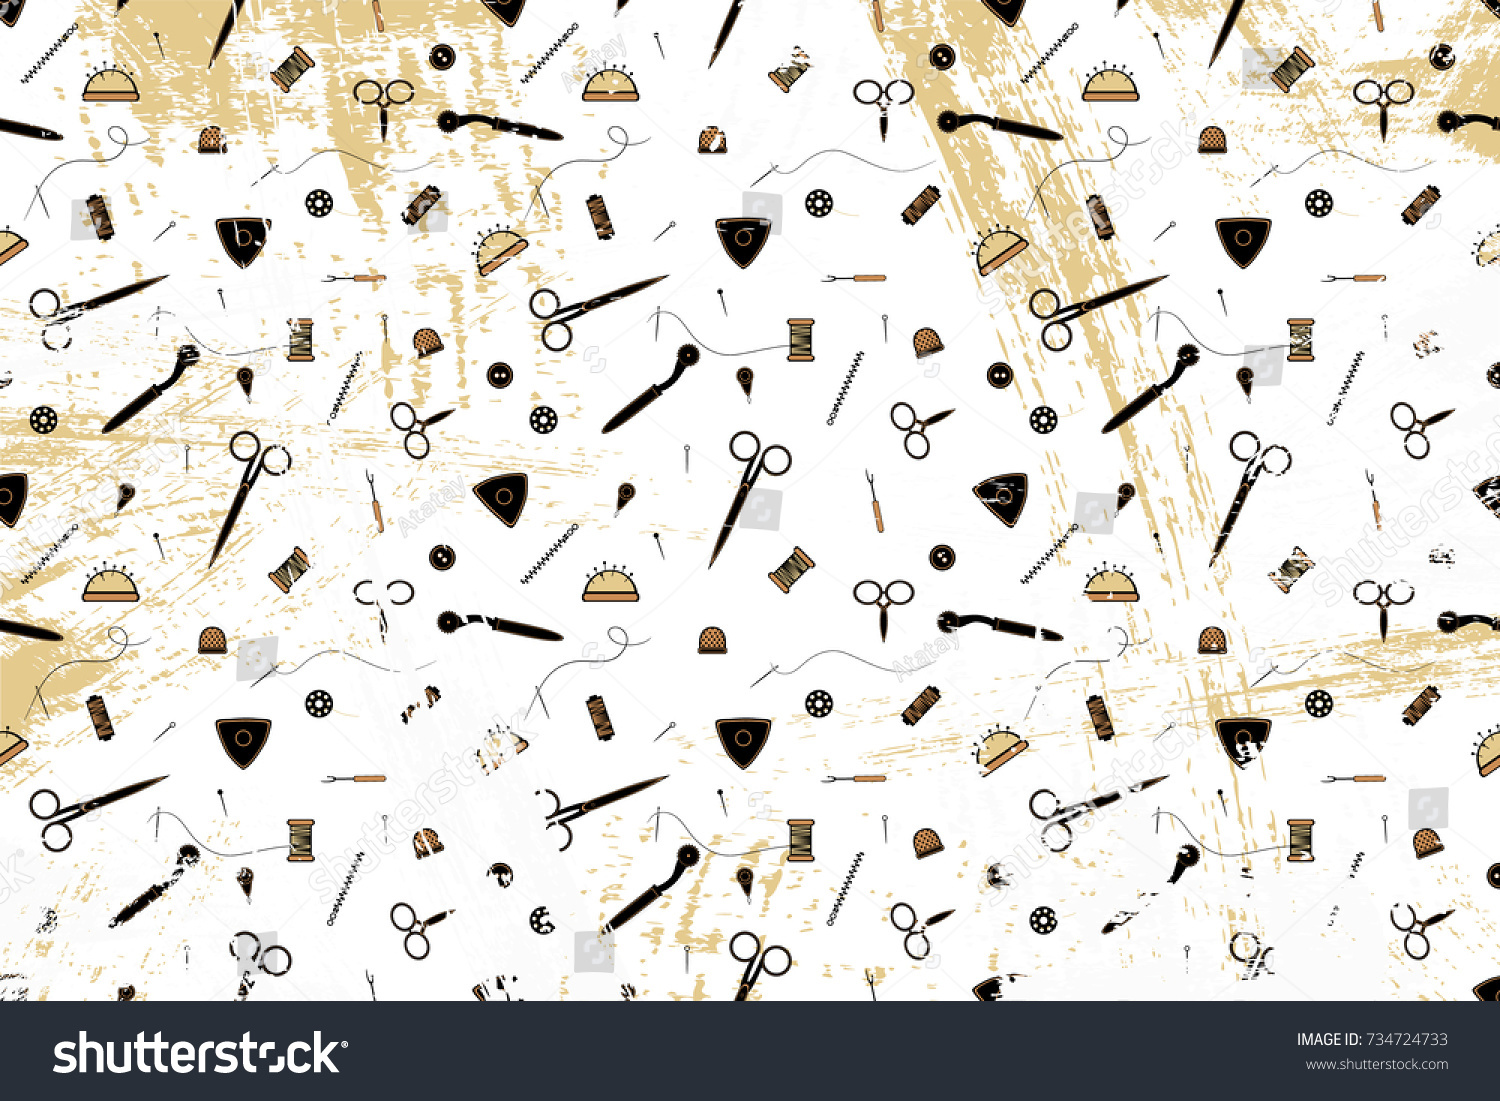 Vector pattern image tools sewing theme stock vector 734724733 vector pattern with the image of tools for sewing theme for fashion can be jeuxipadfo Image collections